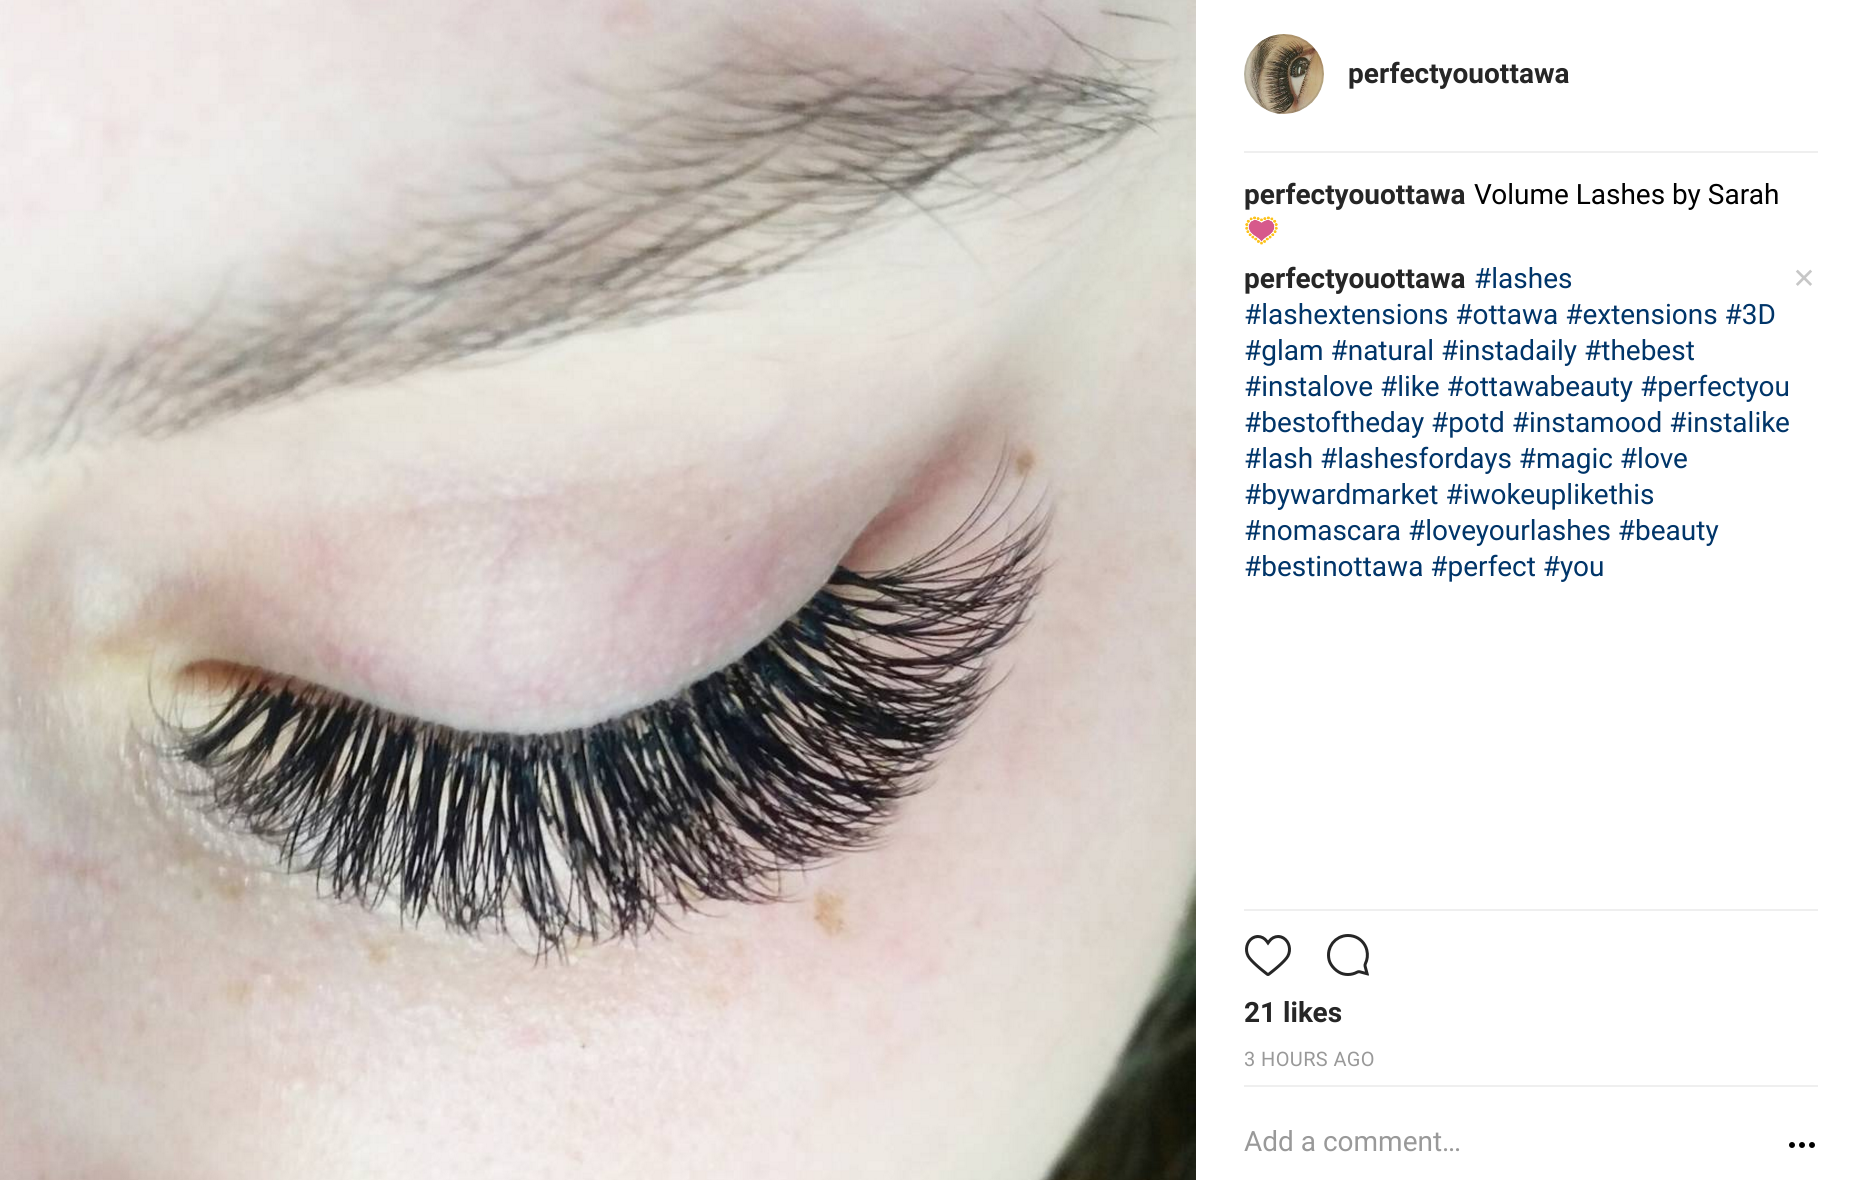 sarahs_incredible_lashes_ottawa_eyelash_extensions